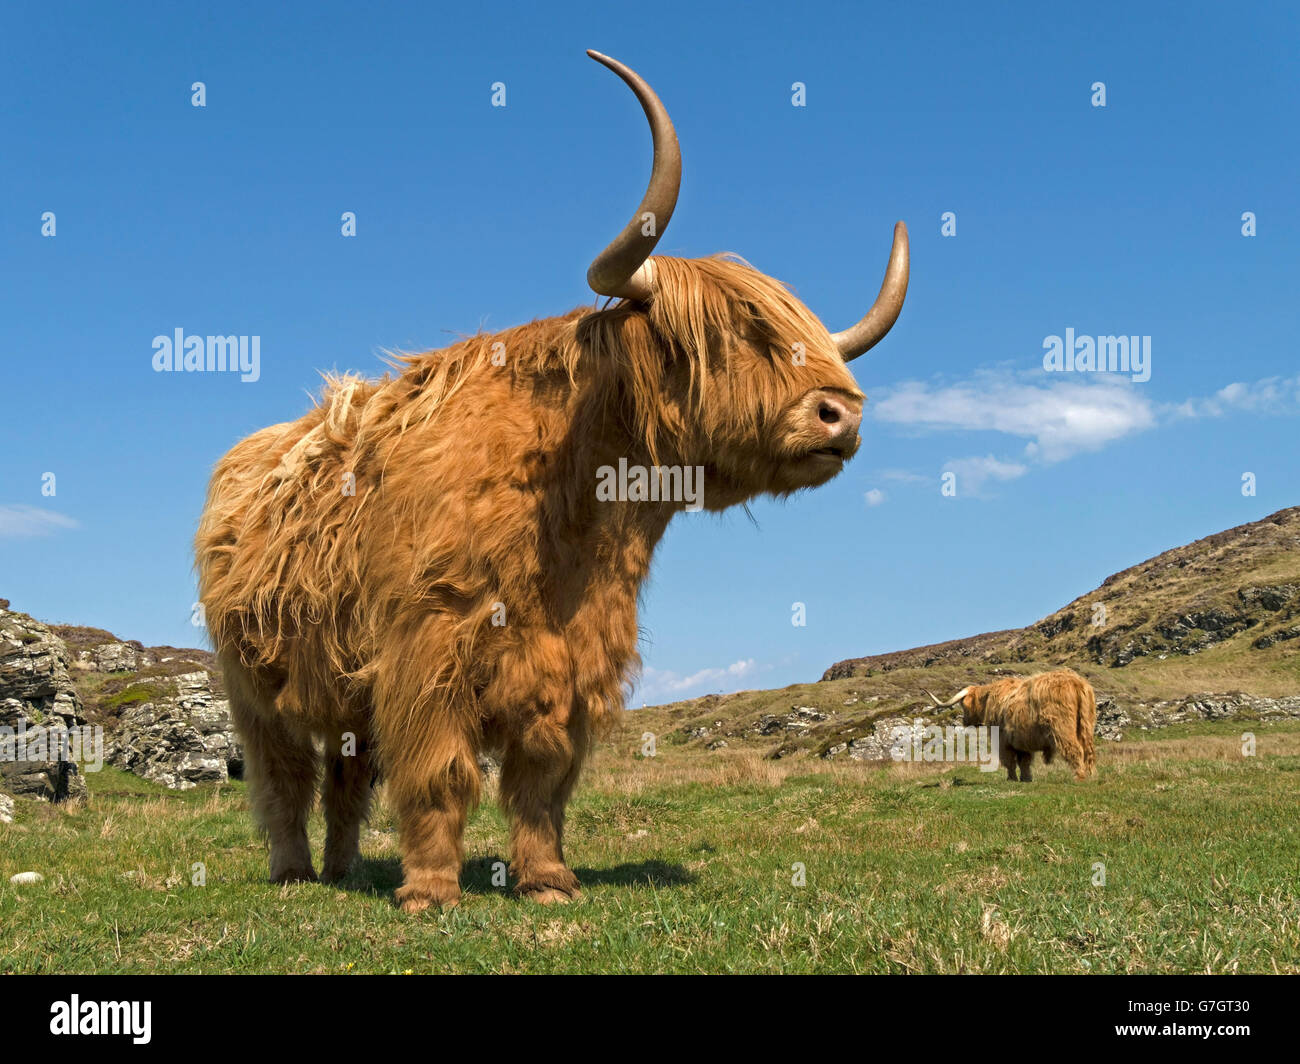 Scottish Highland mucca, Isola di Colonsay, Scotland, Regno Unito. Foto Stock